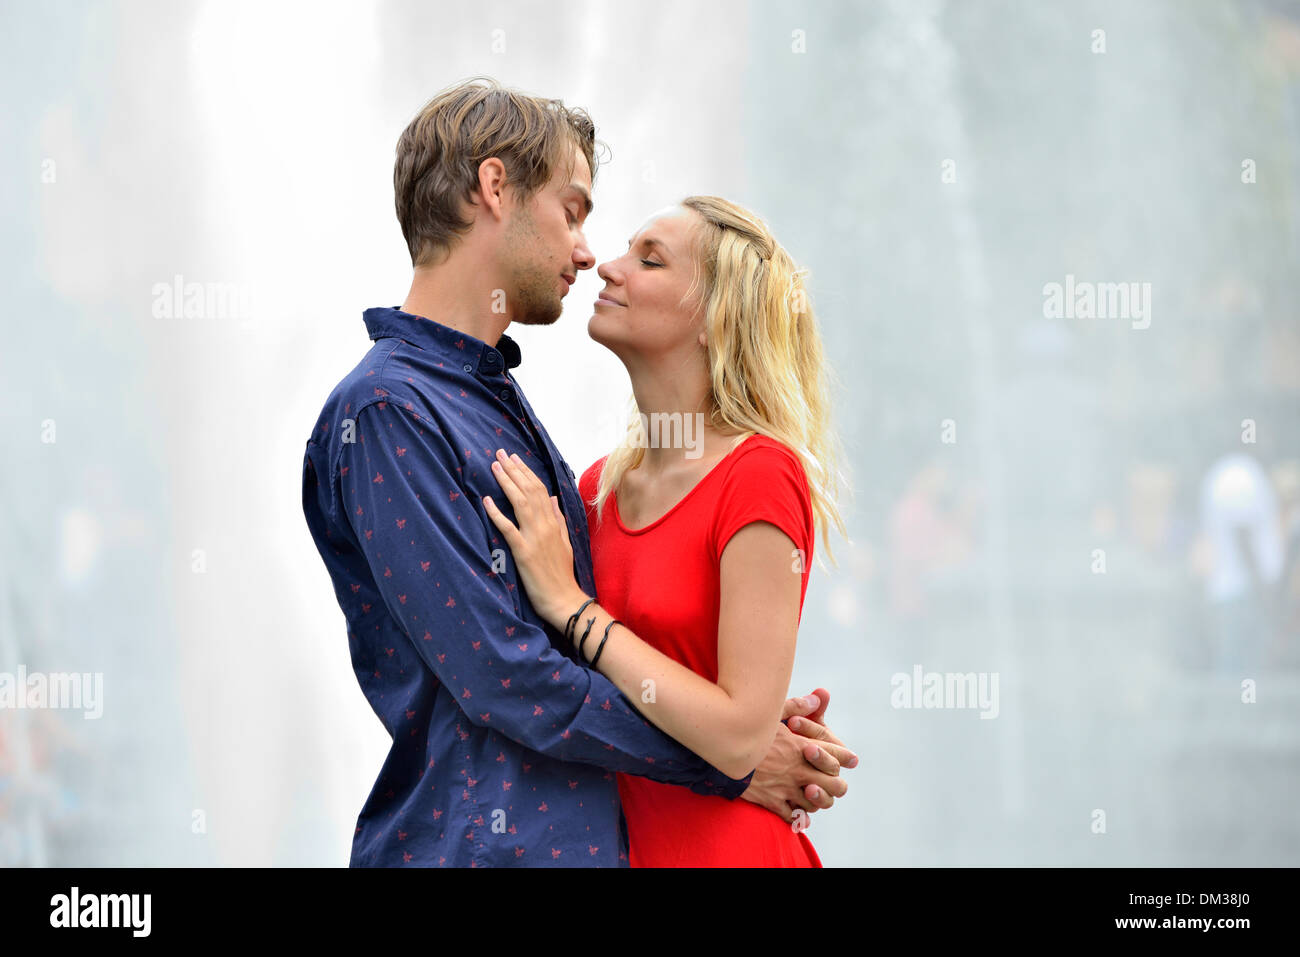 America United States USA East Coast New York Manhattan couple embrace kiss romance romantic love red dress blonde guy city man - Stock Image